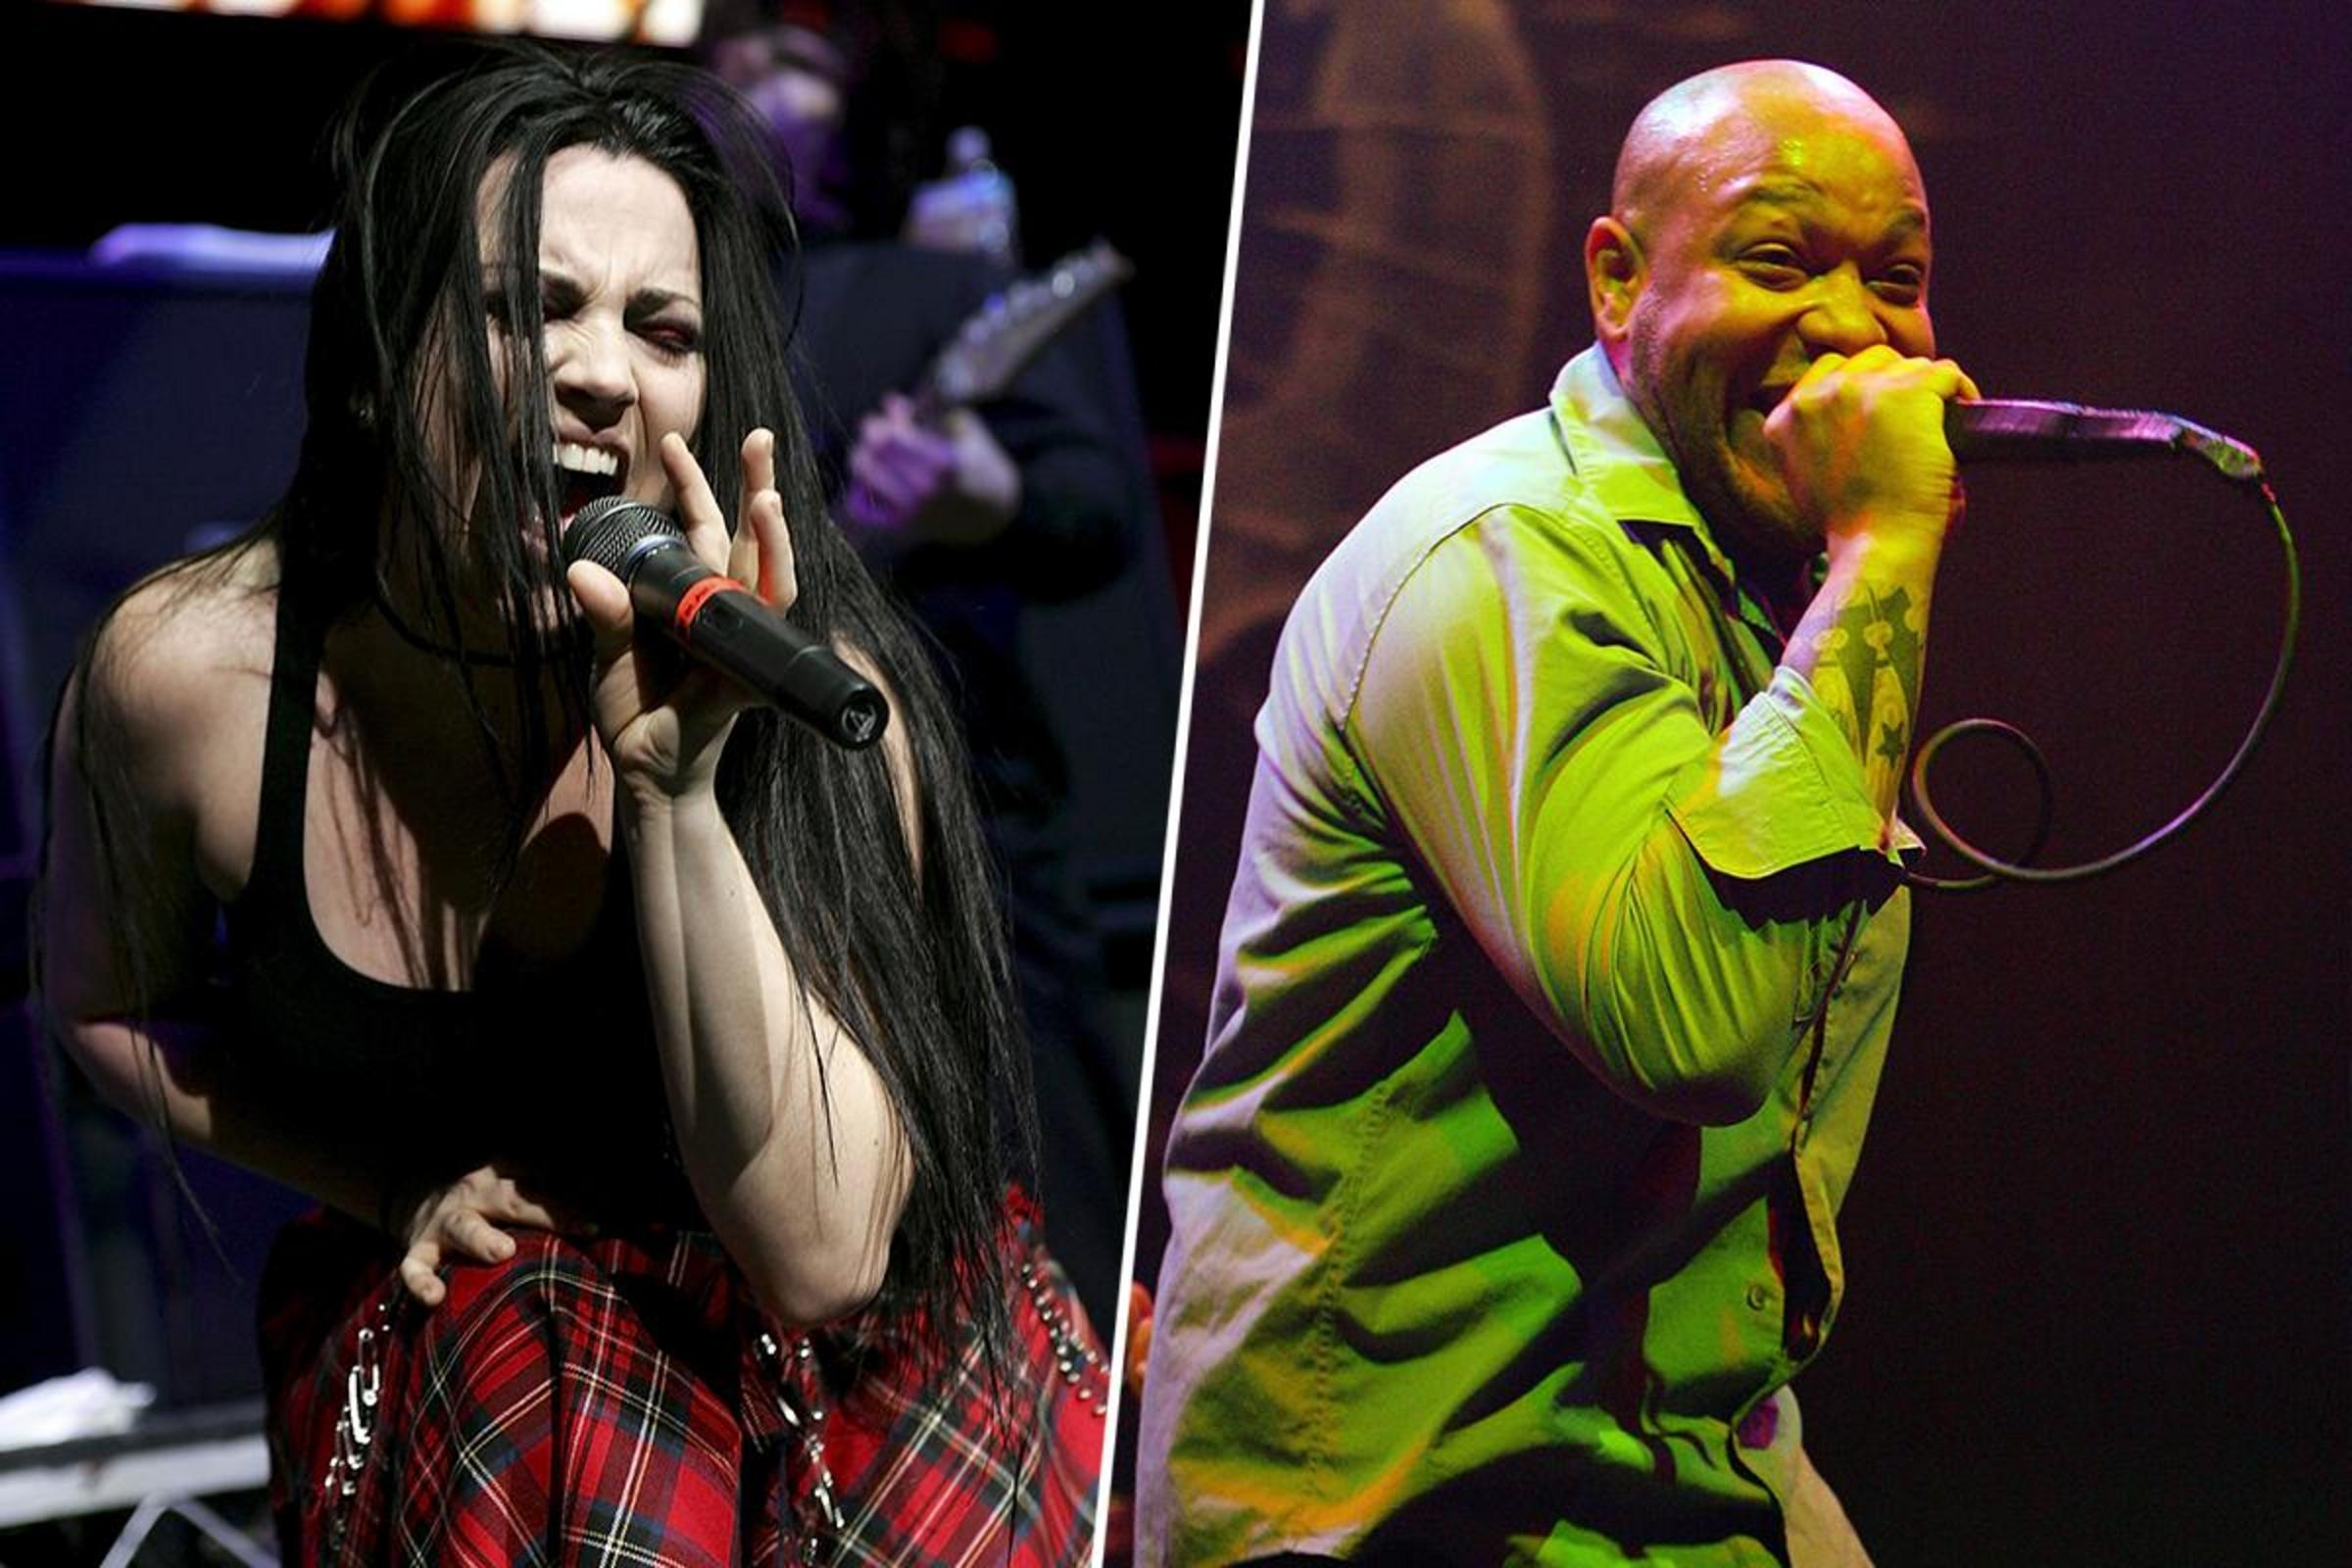 Favorite Operatic Rock Band Evanescence Or Killswitch Engage